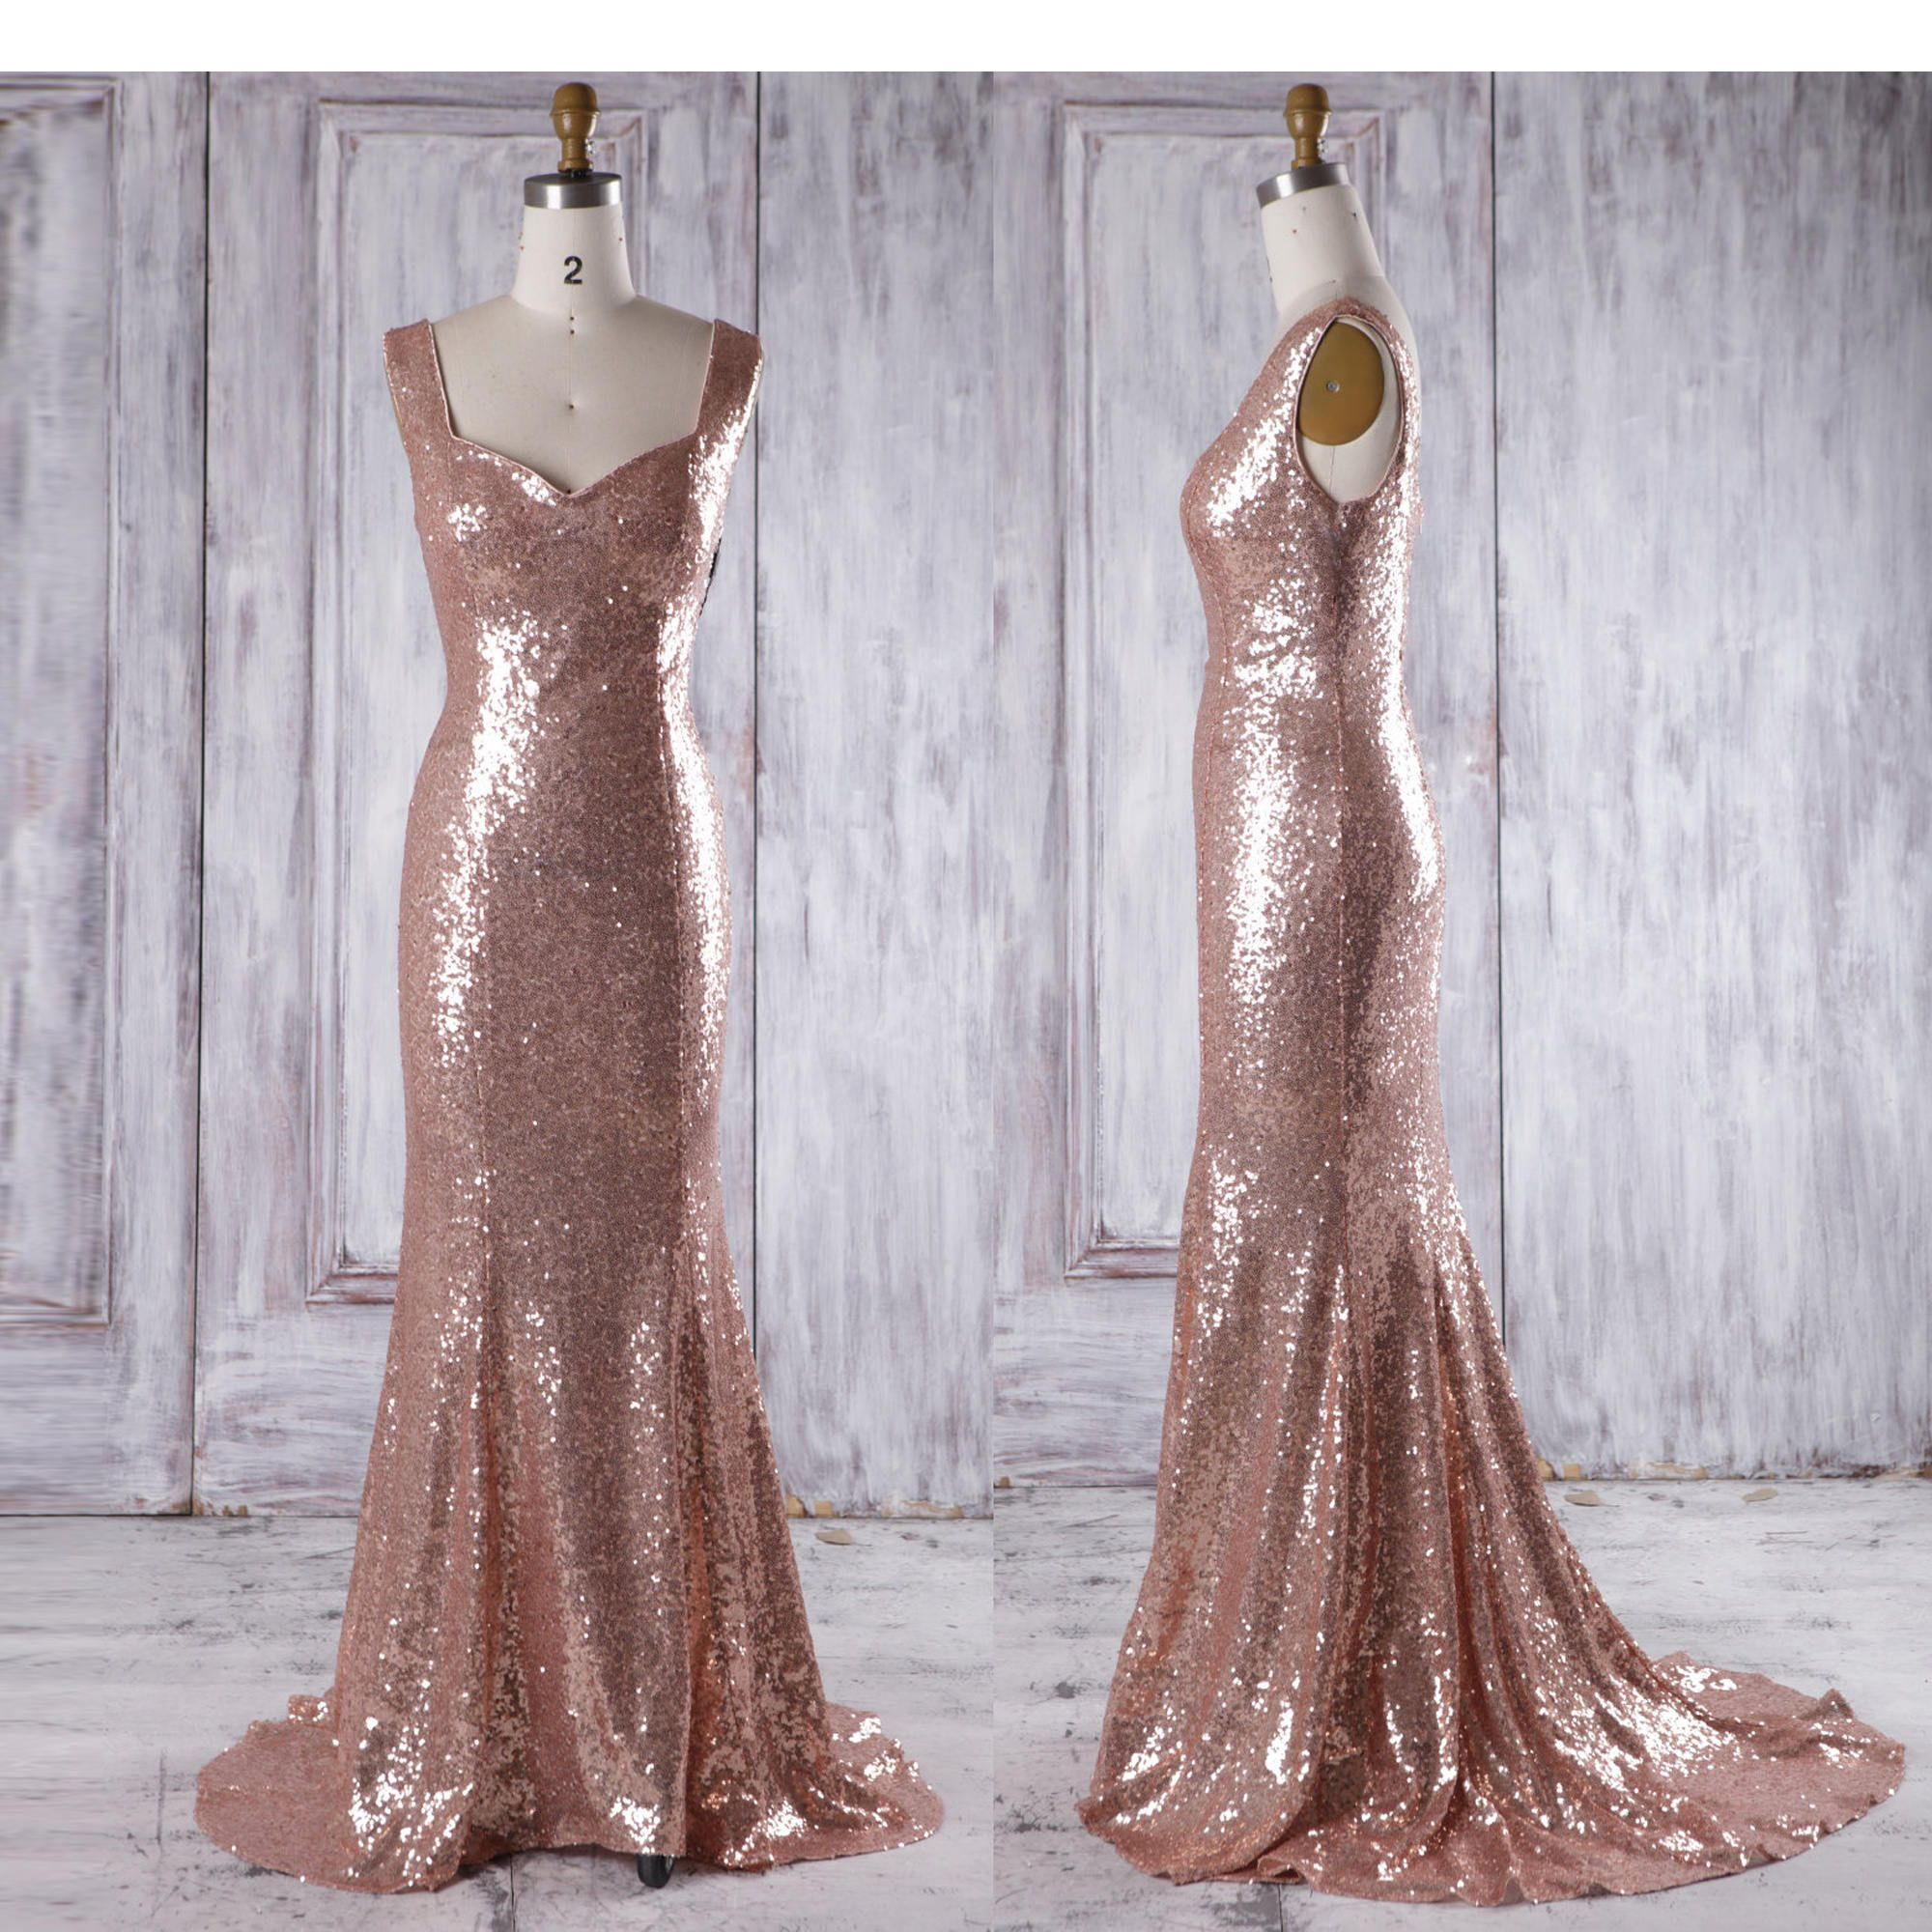 Bridesmaid dress rose gold sequin dresswedding dressv neck bodycon